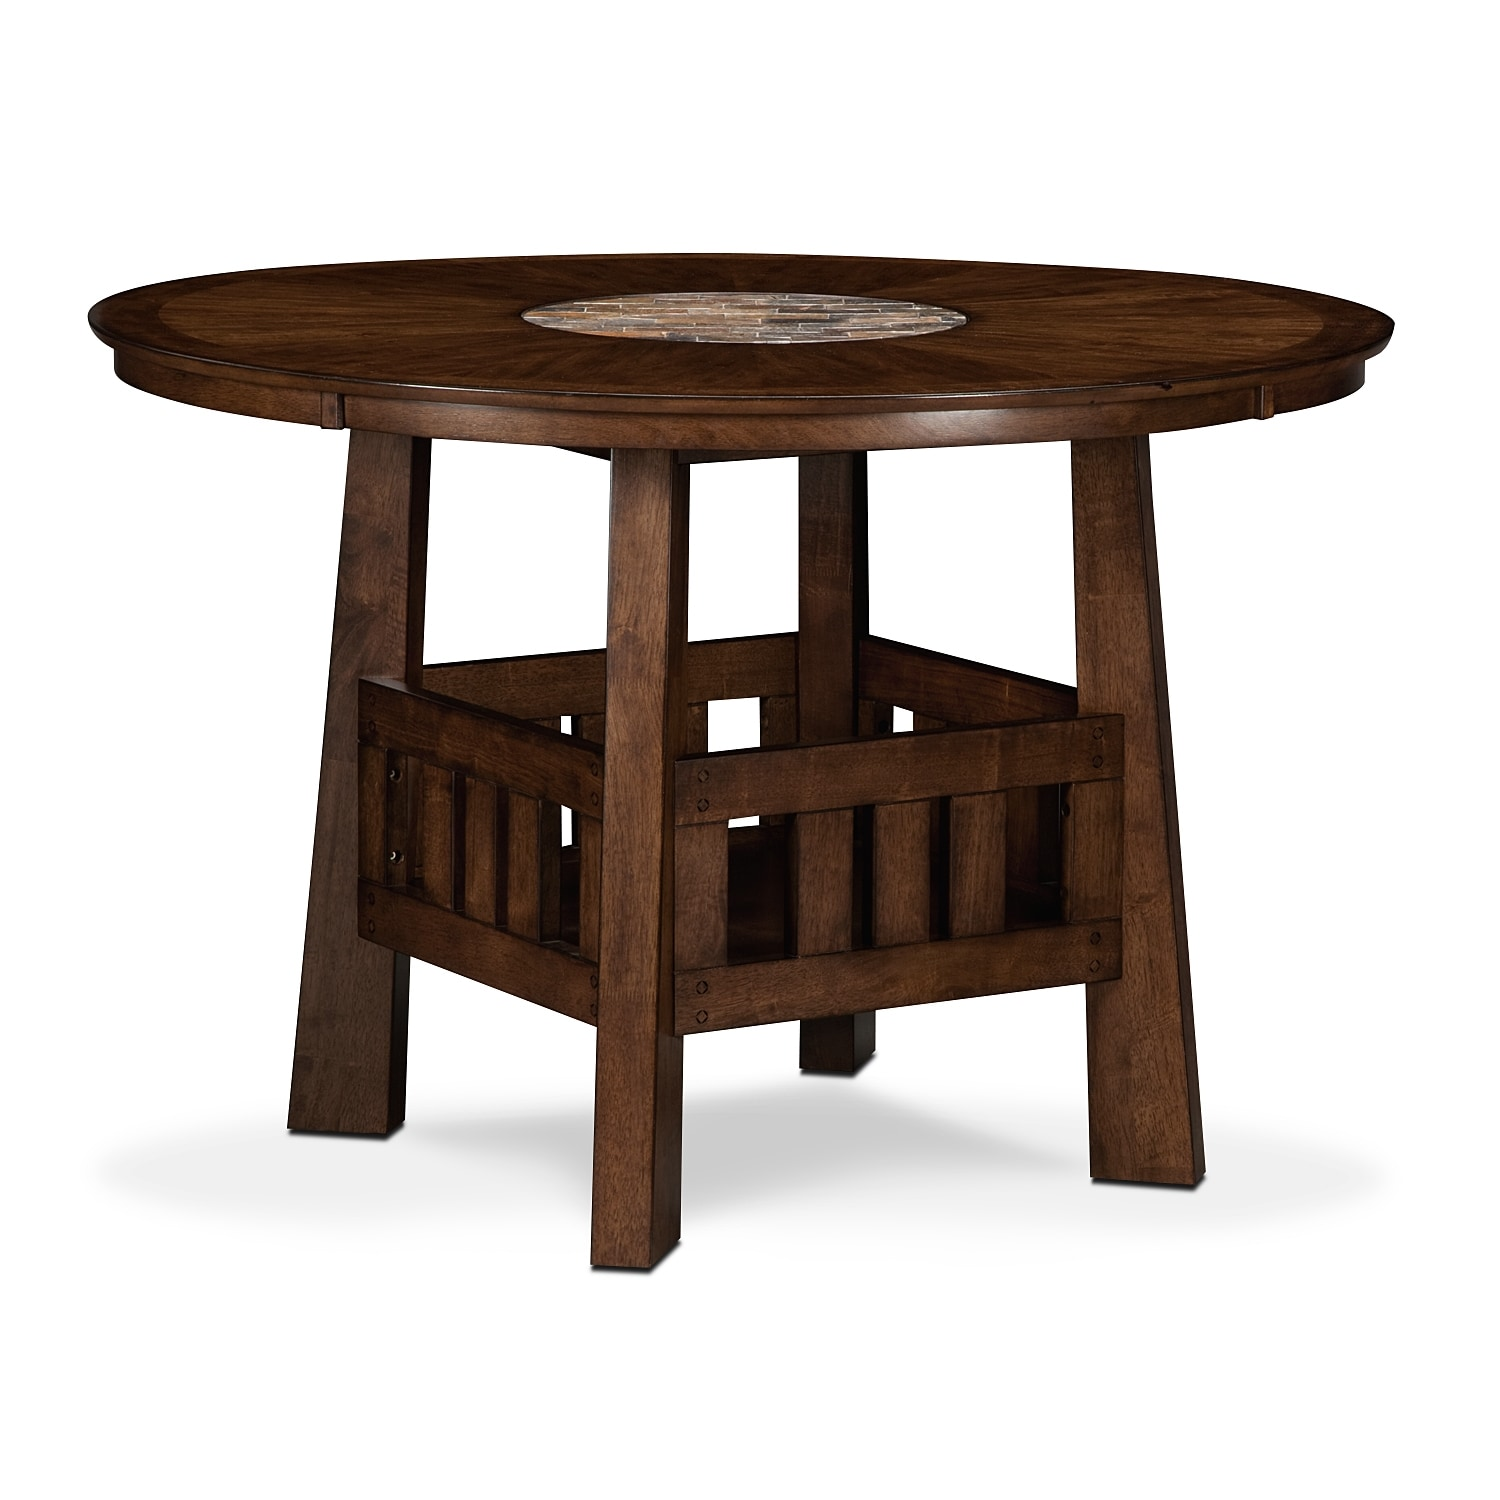 [Harbor Pointe Counter-Height Table]